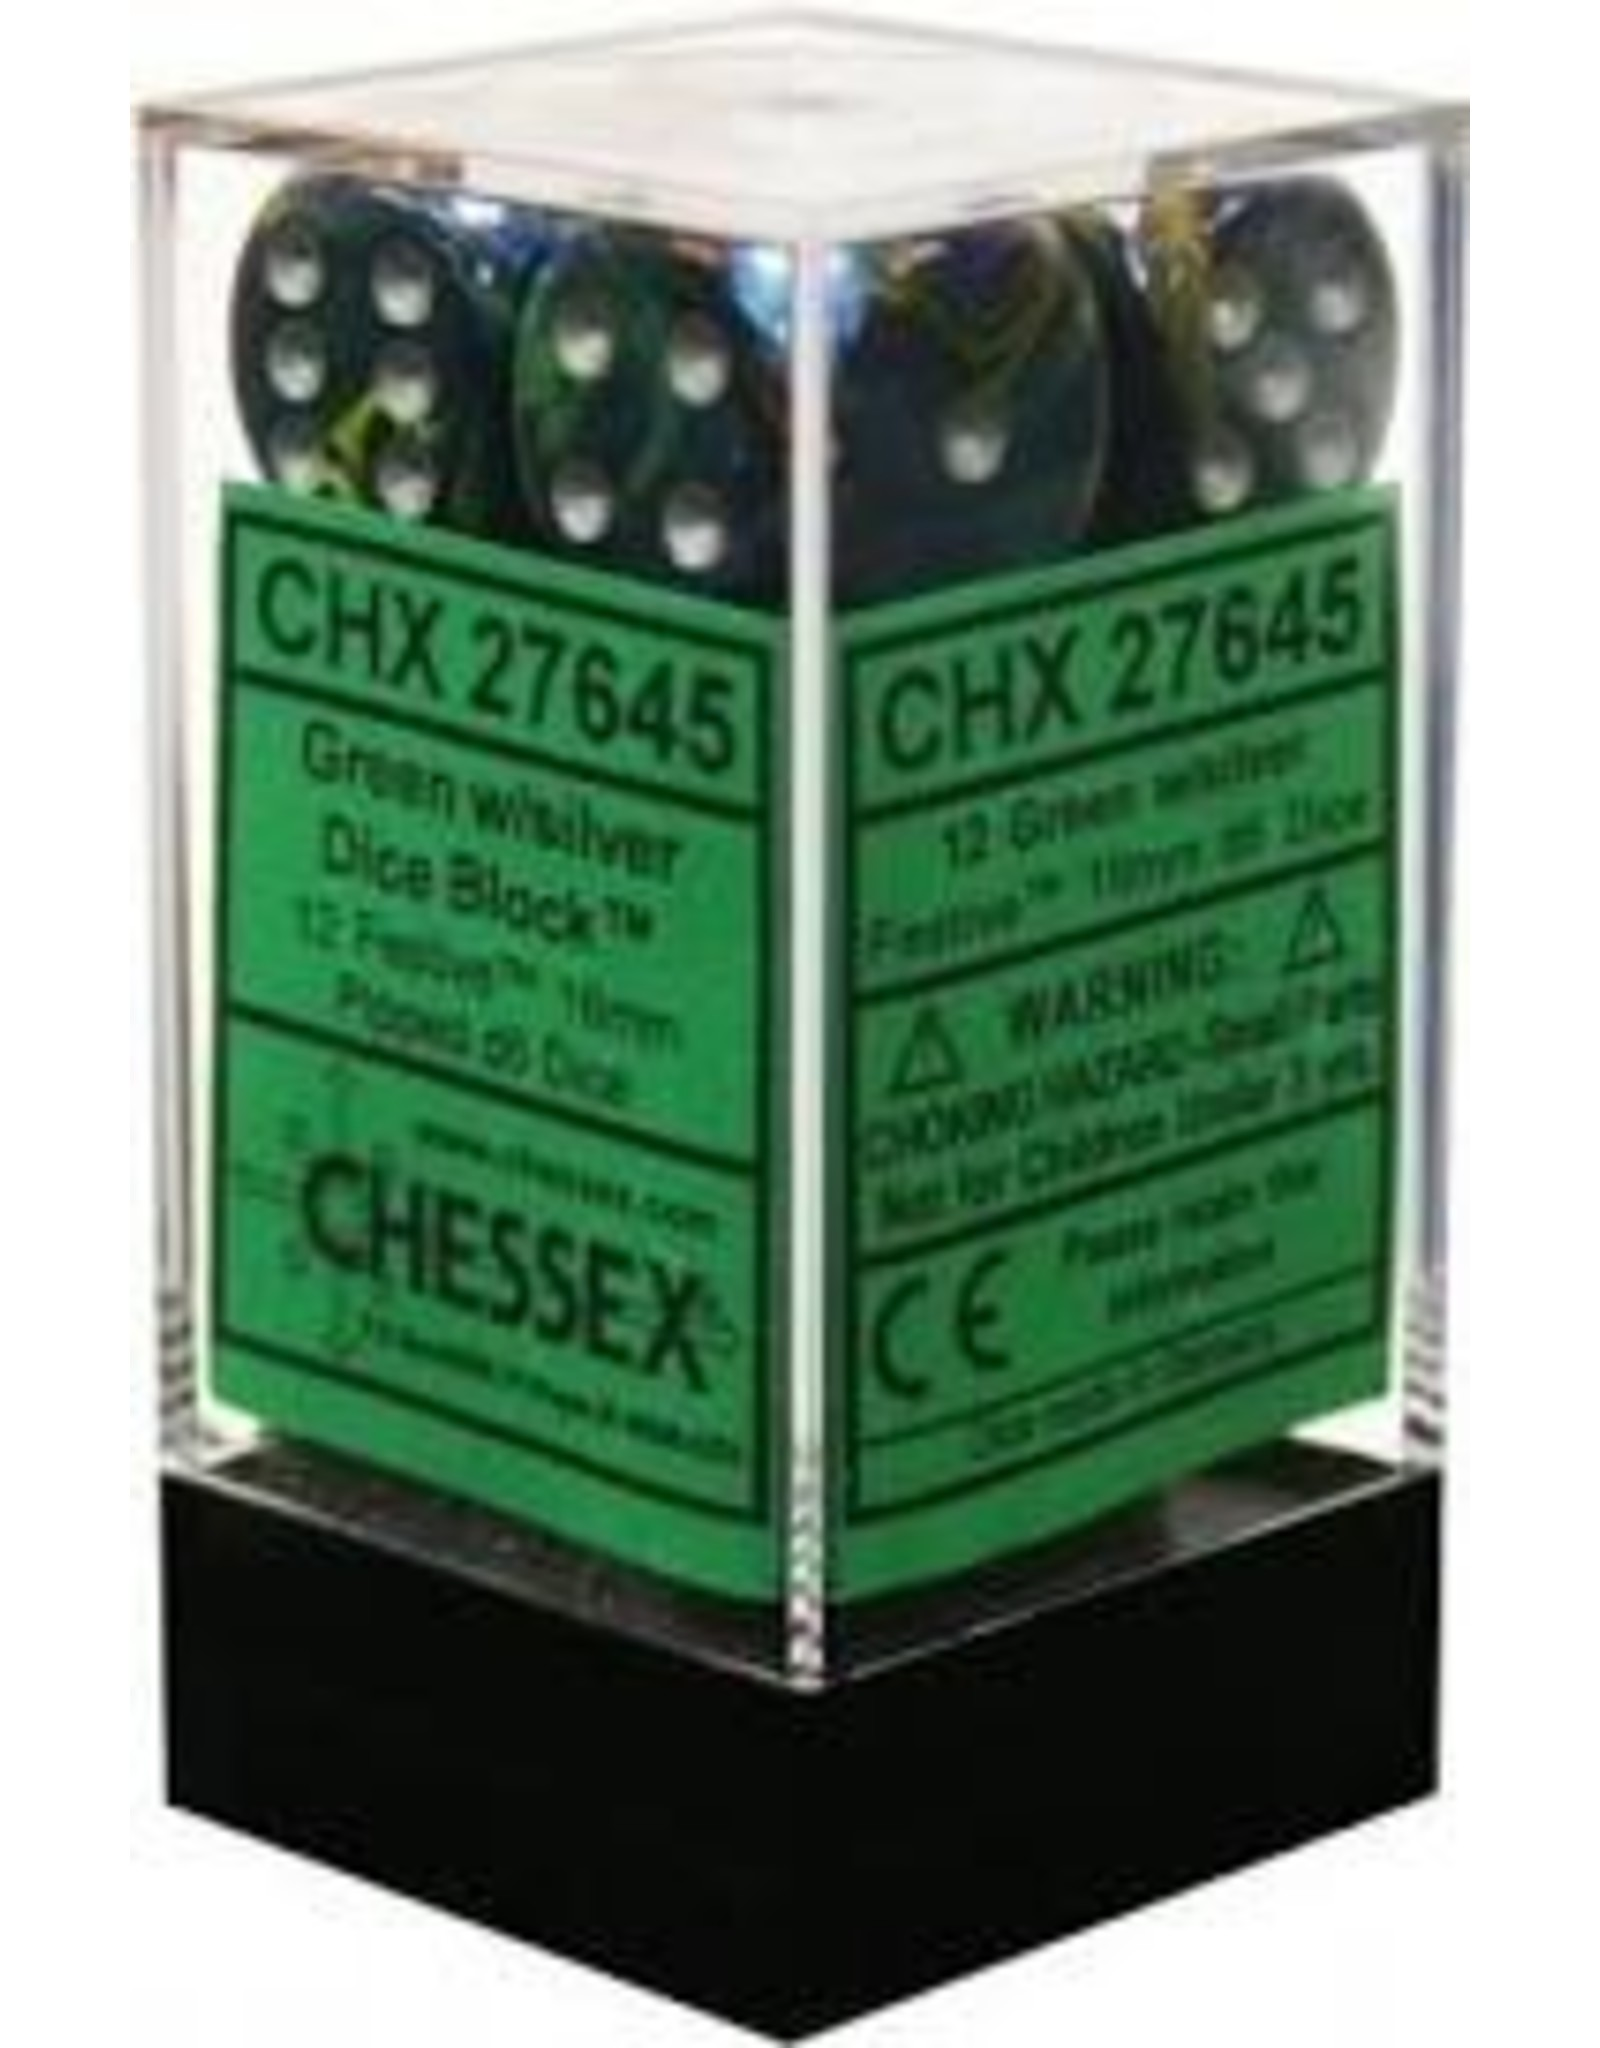 Chessex Festive Green/silver 16mm D6